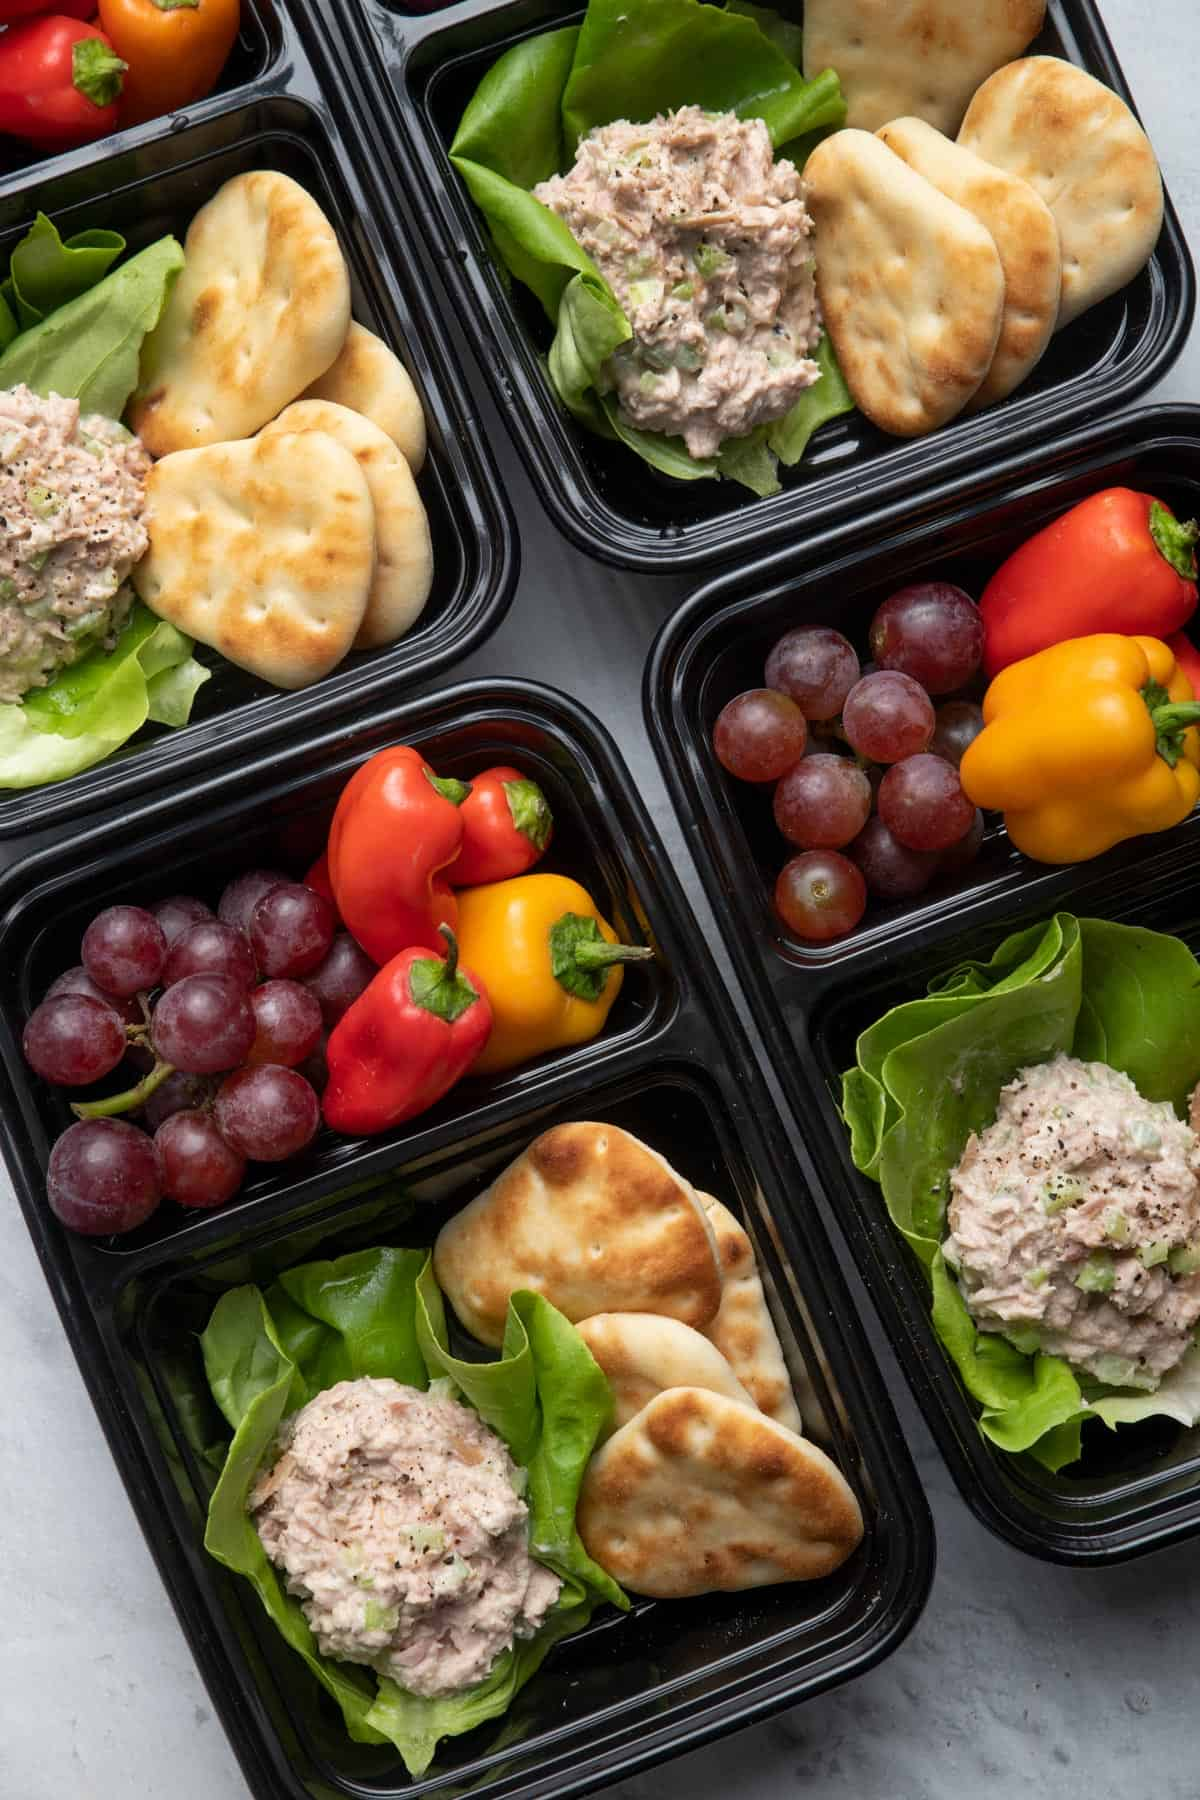 Tuna salad meal prep containers with vegetables and fruit